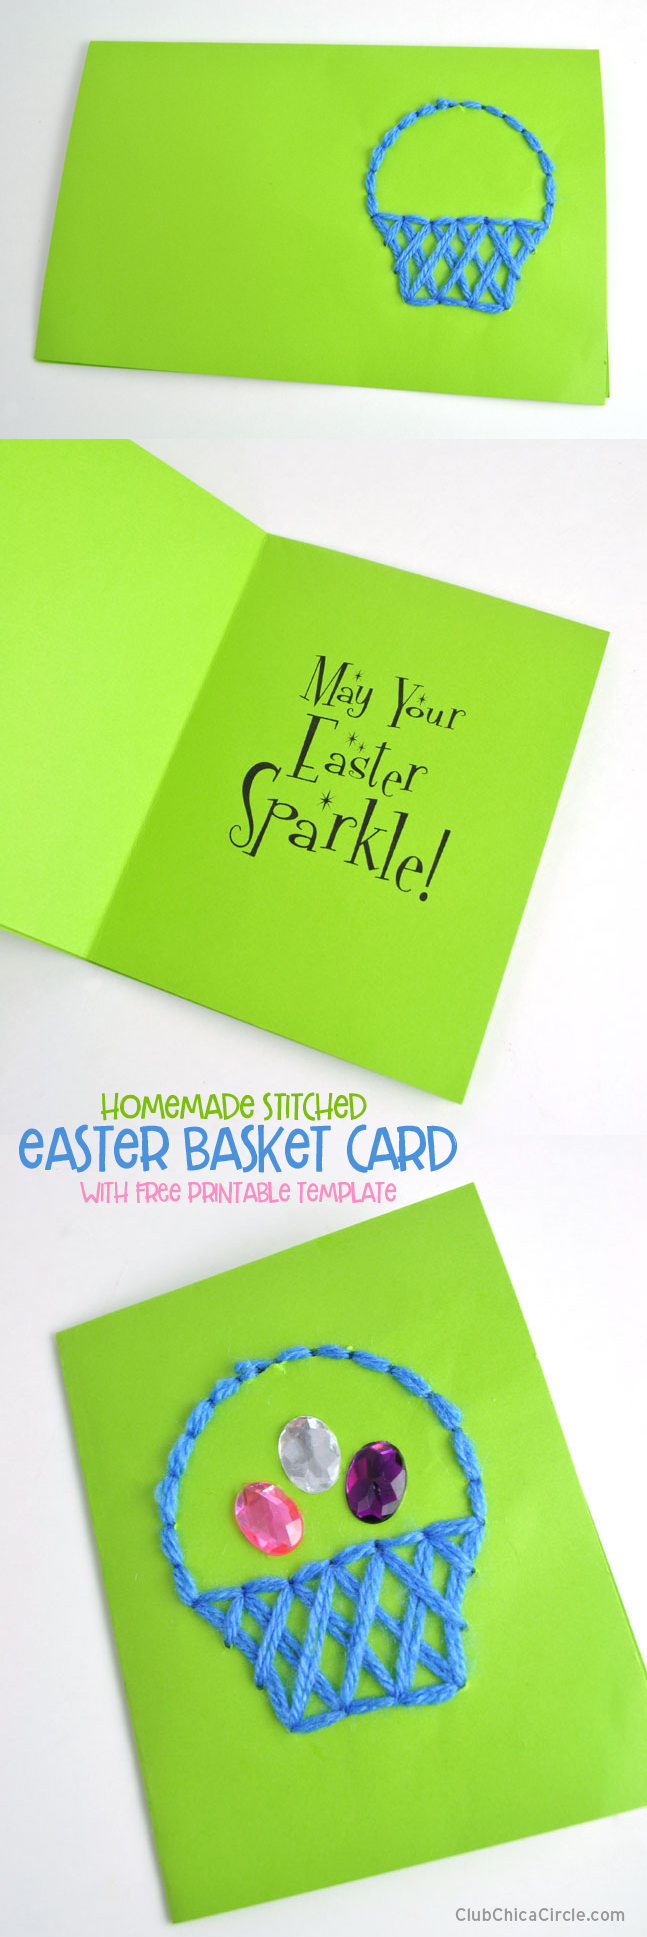 Easter homemade card tutorial – easy craft idea for kids @chicacircle